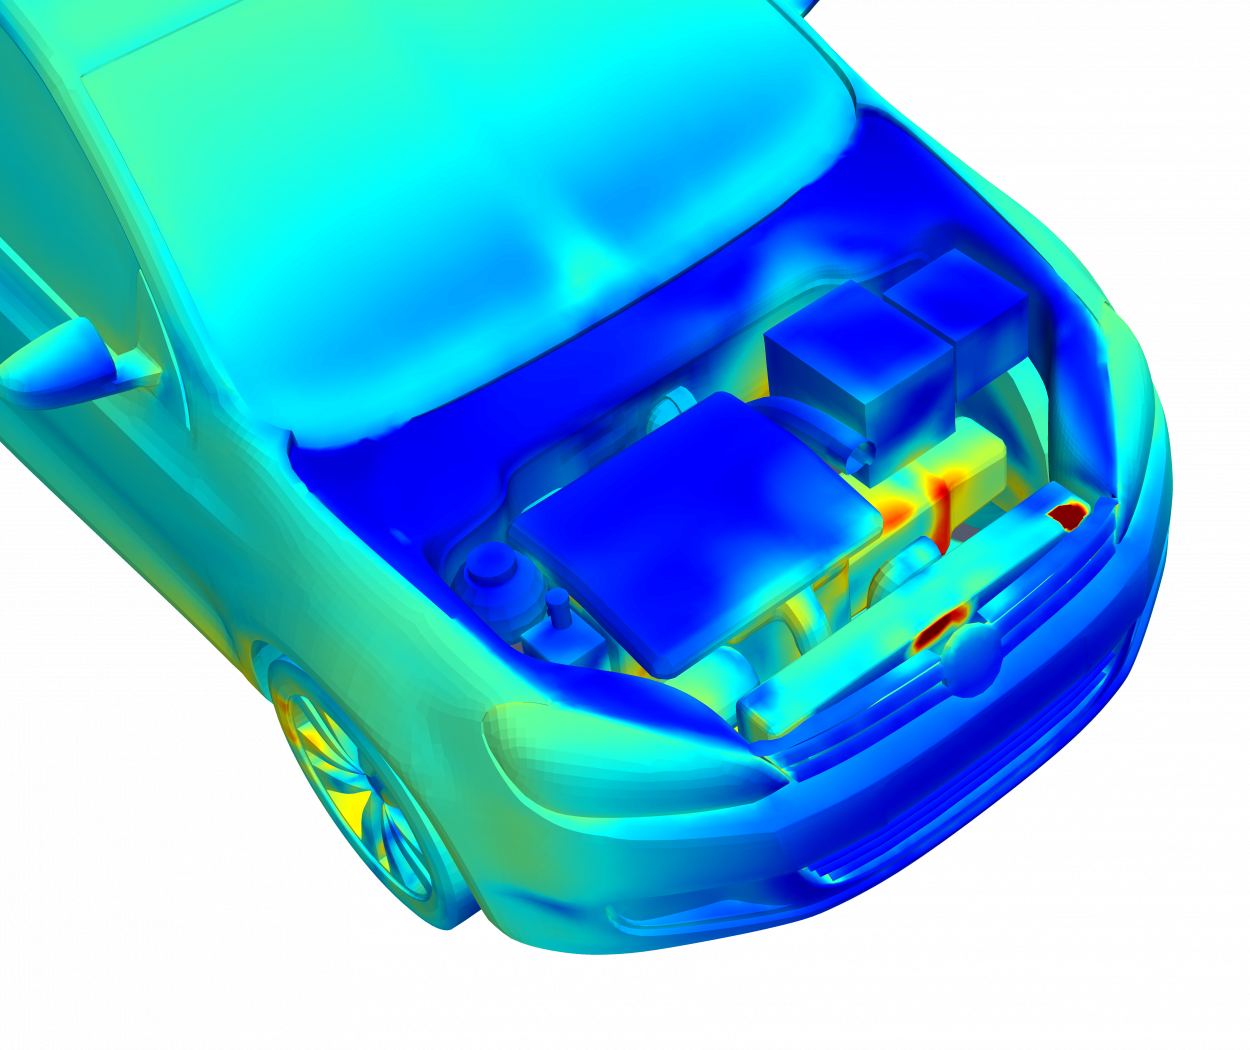 thermal simulation model of volkswagon golf with engine compartment